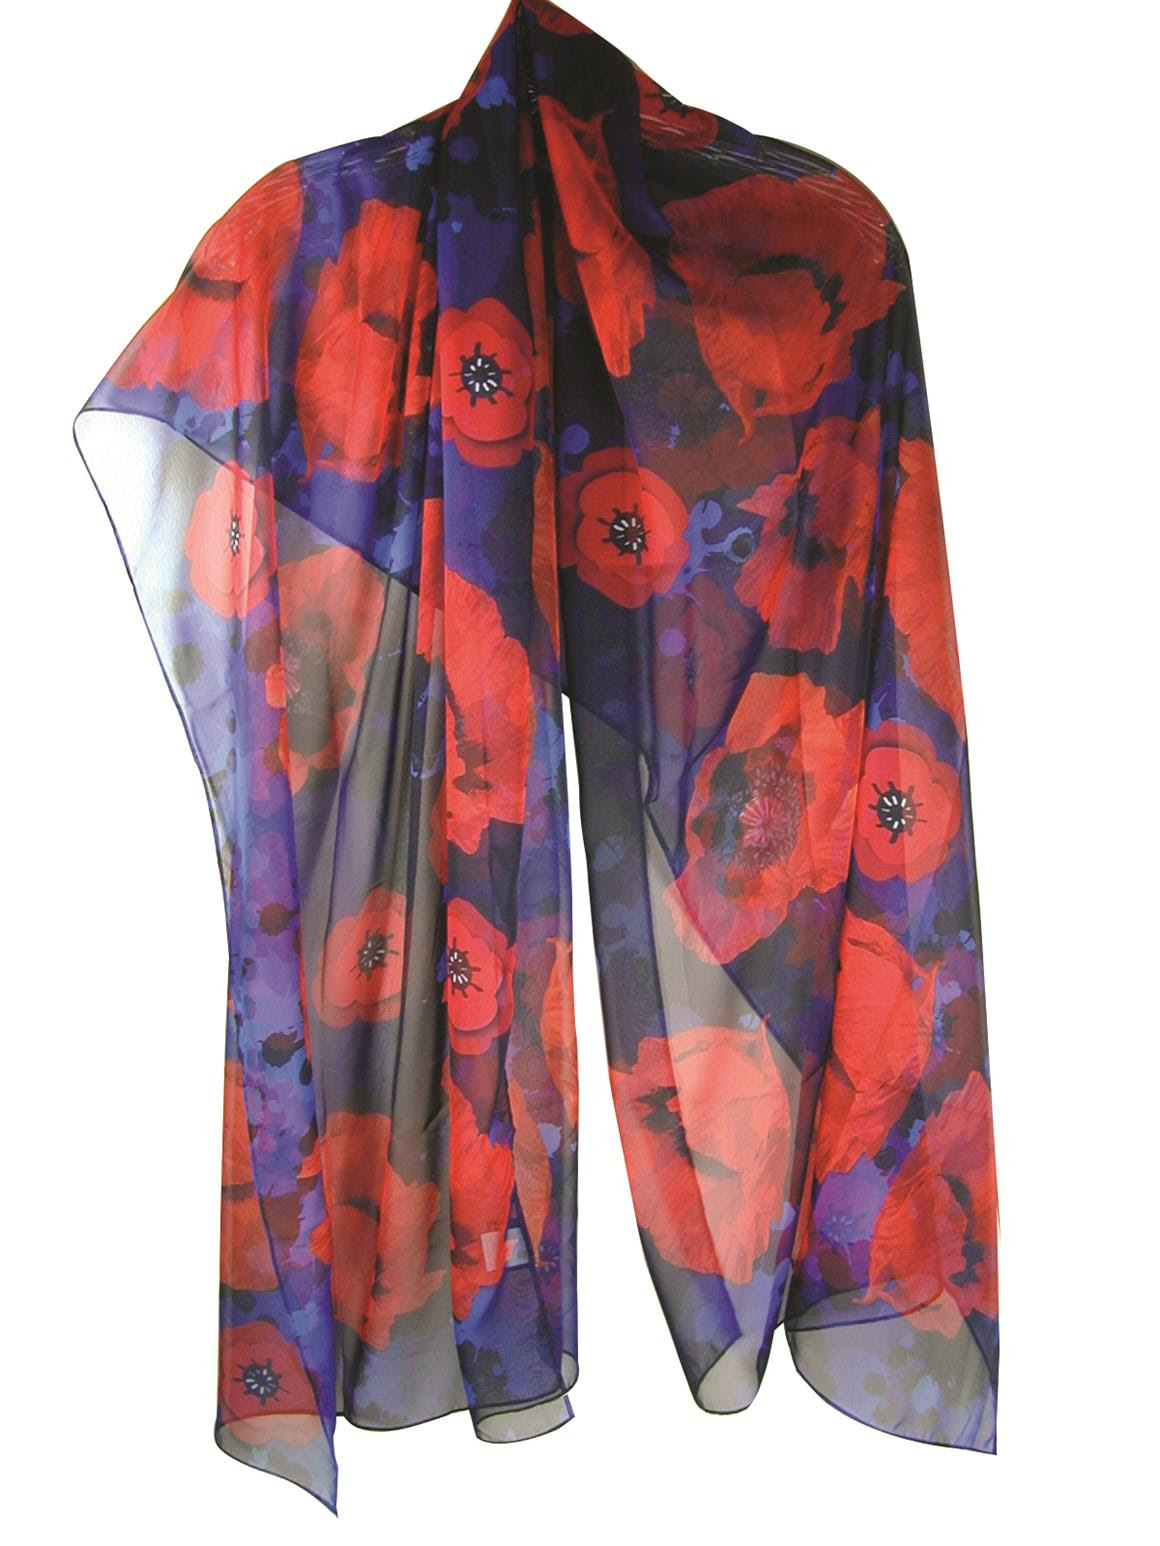 Poppy Flower Shawl Remembrance by Boston Exclusives